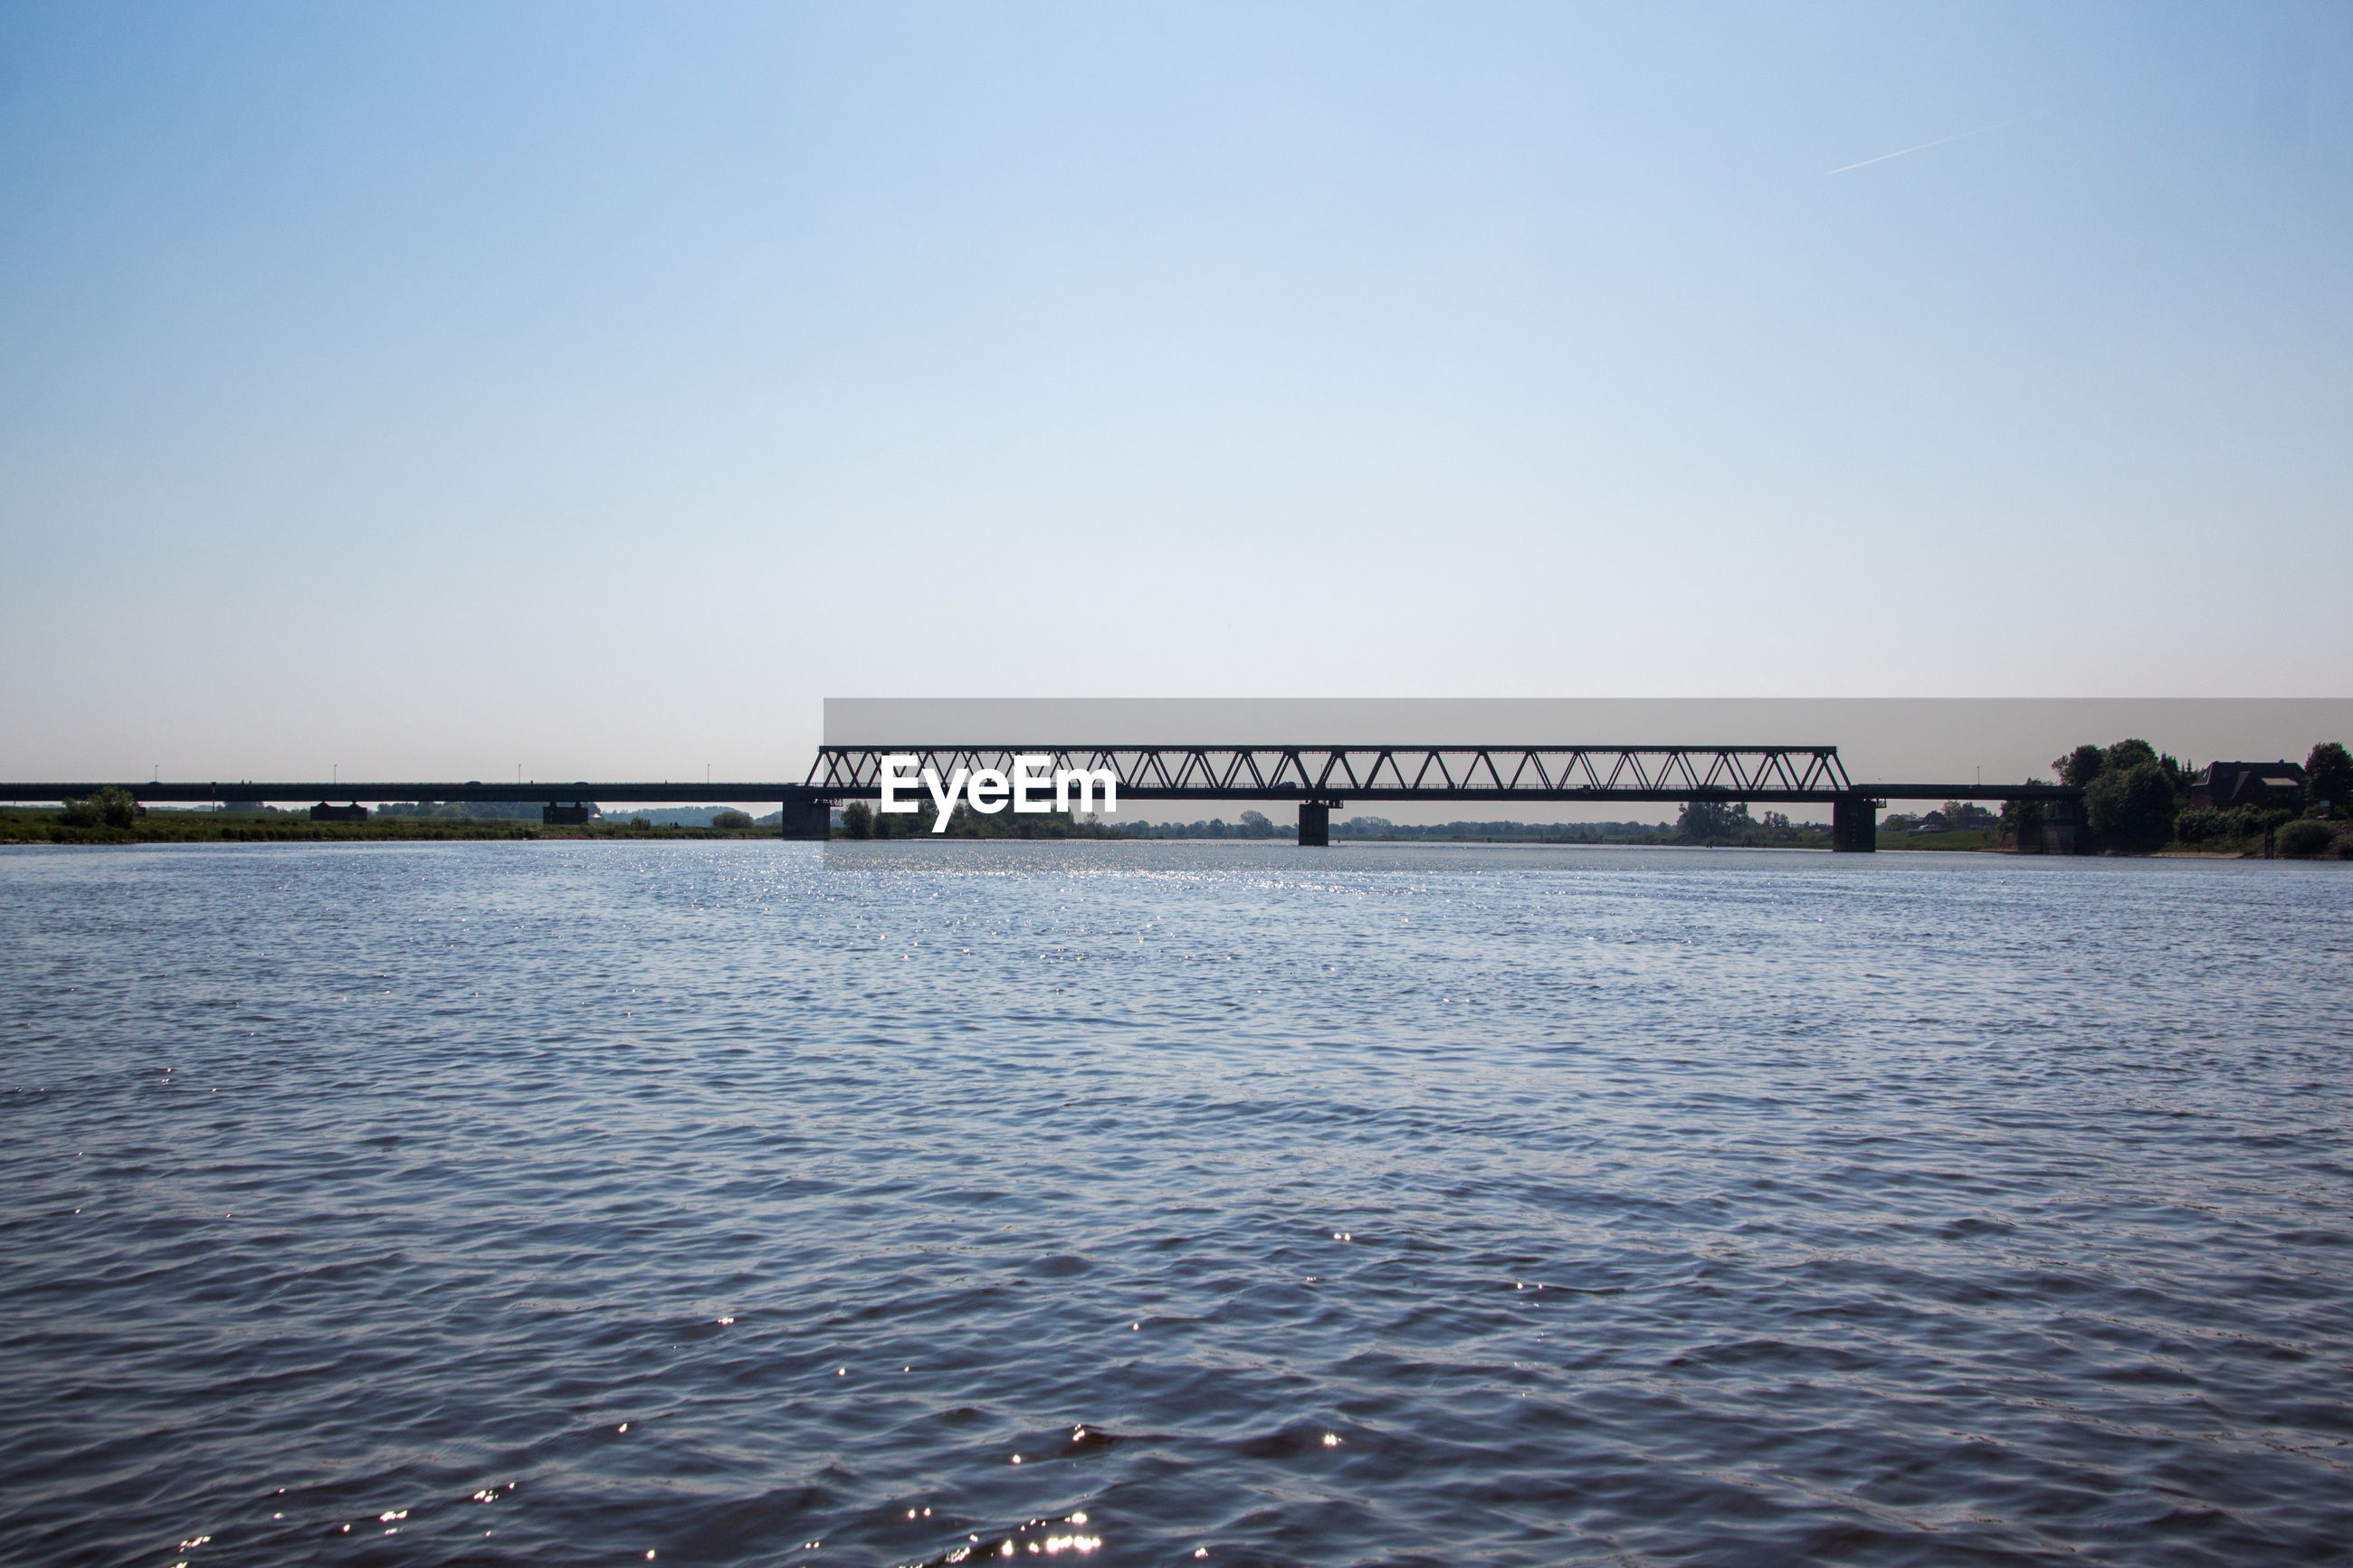 SCENIC VIEW OF BRIDGE OVER RIVER AGAINST CLEAR SKY